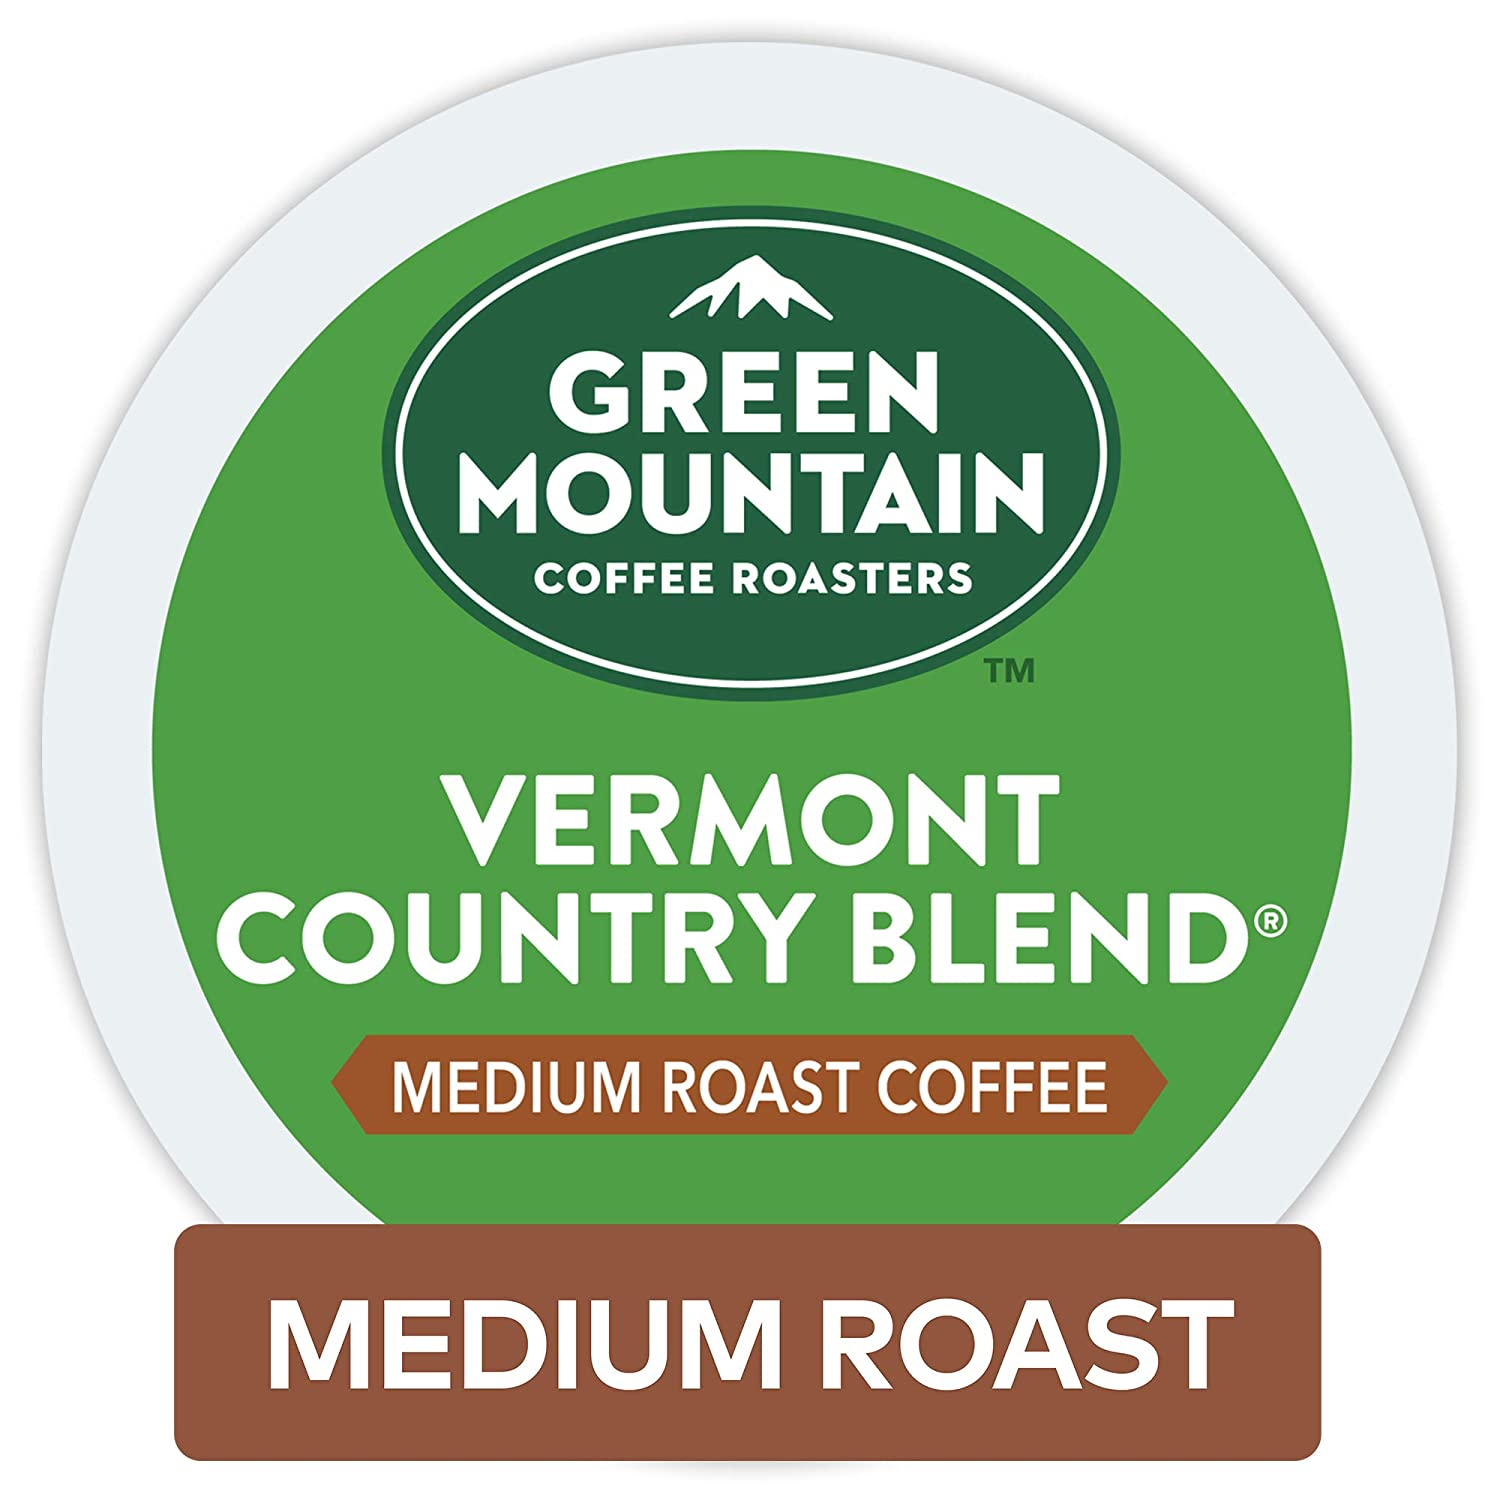 Green Mountain Coffee Roasters Vermont Country Blend Keurig Single-Serve K-Cup Pods, Medium Roast Coffee 72 Count